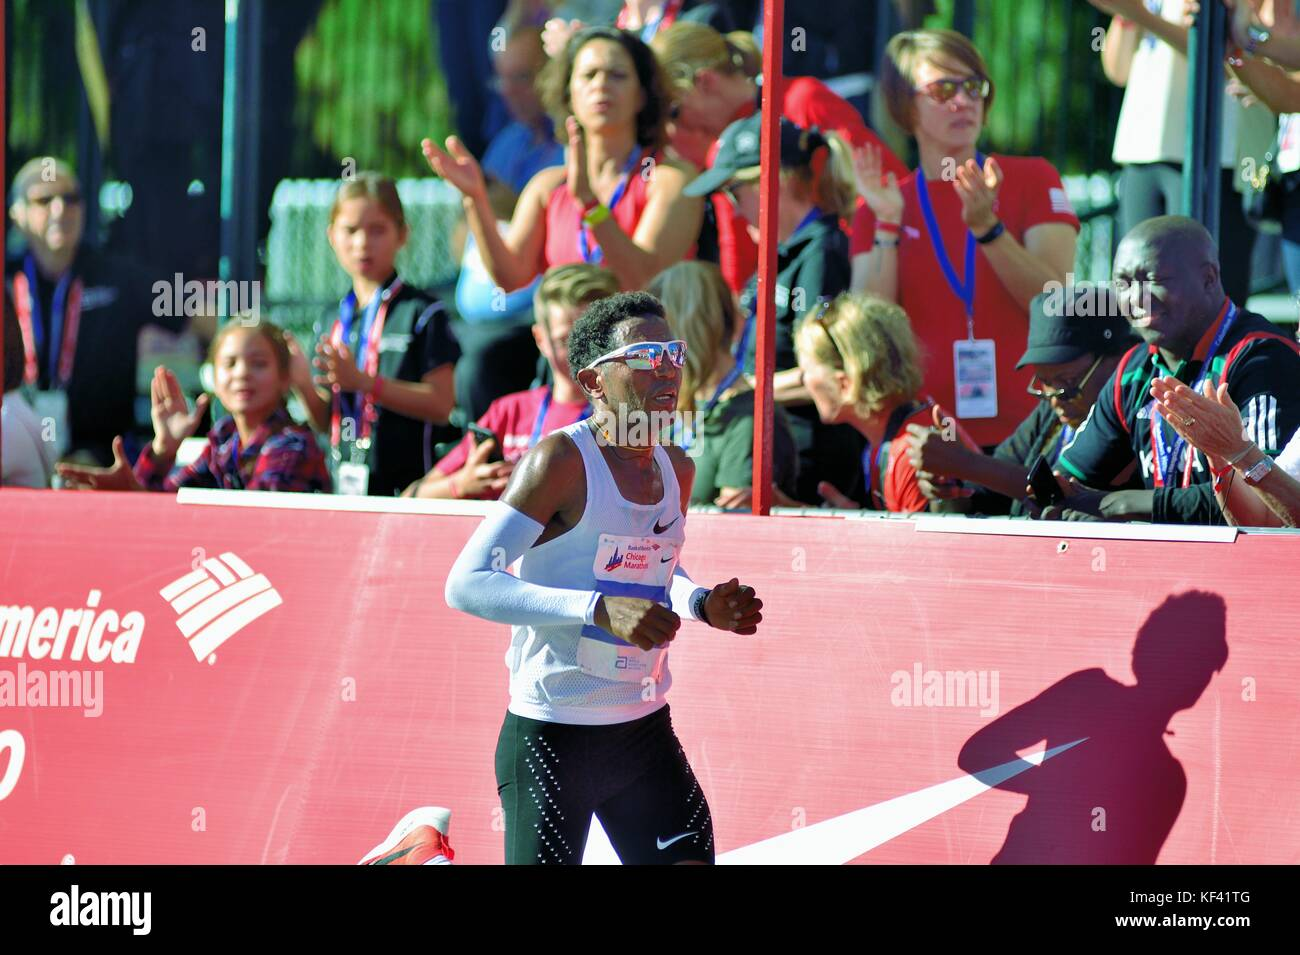 With the finish line reflecting off his sunglasses, elite runner Zersenay Tadese of Eritrea, in the home stretch - Stock Image